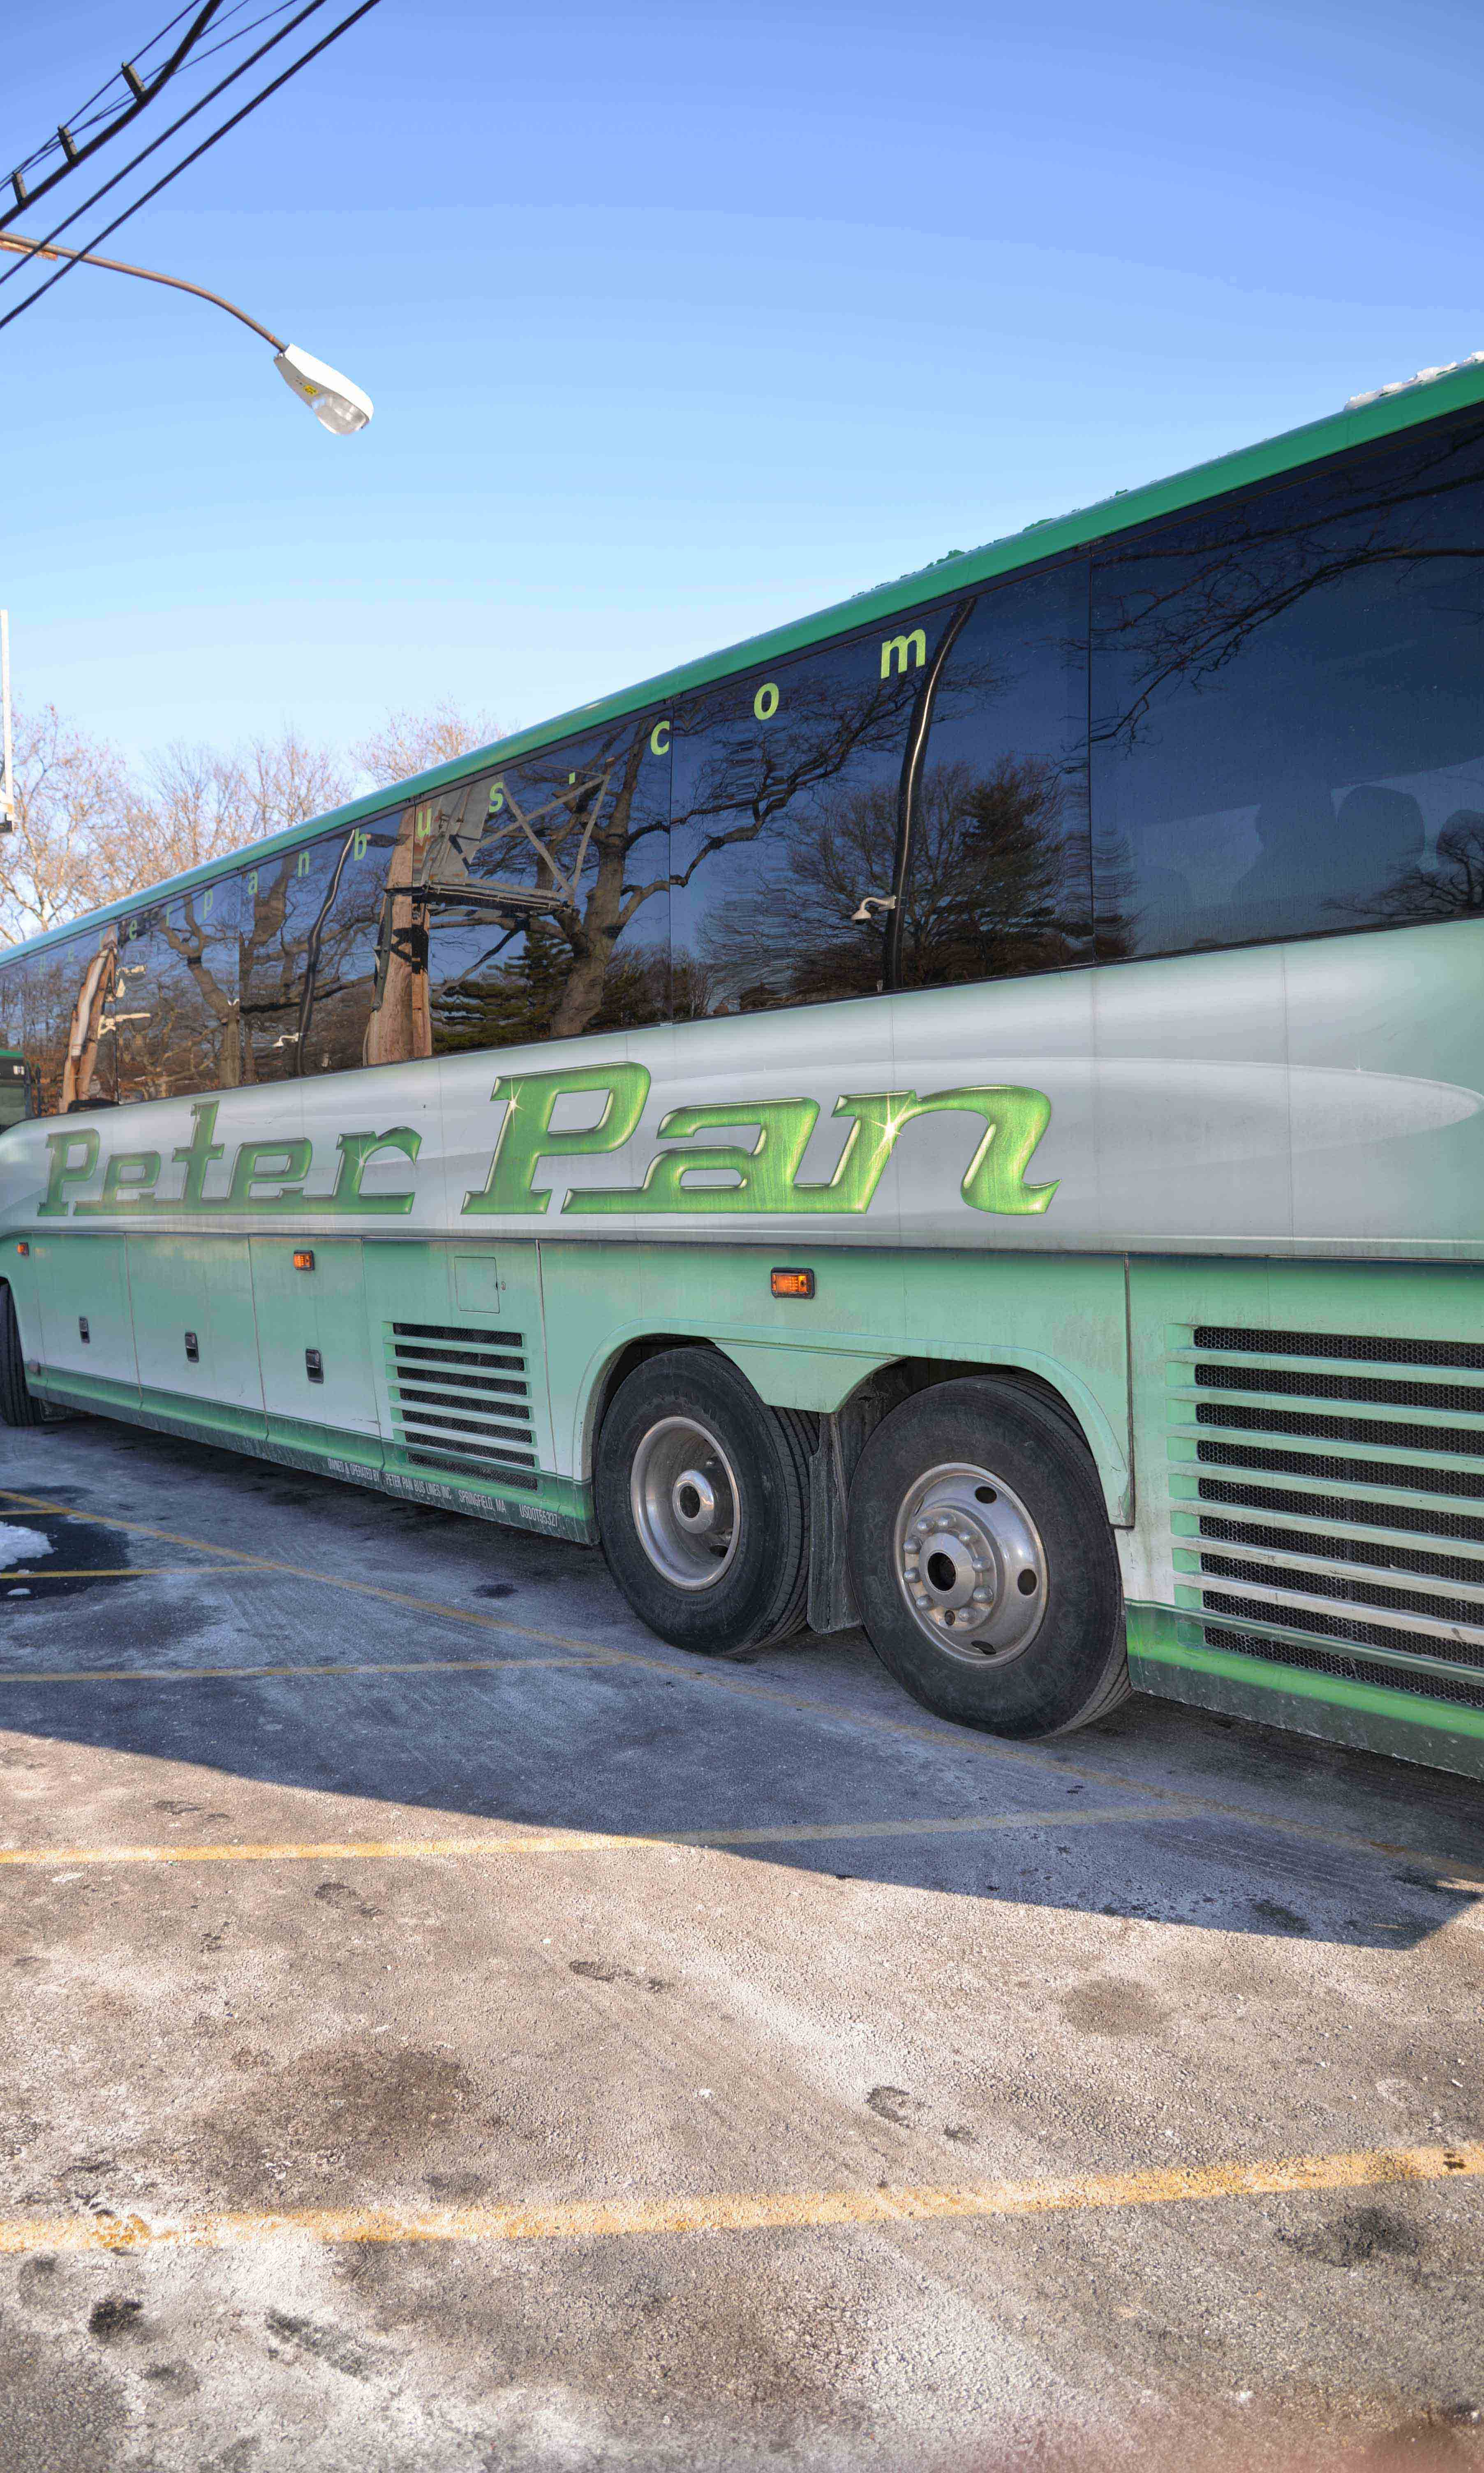 Shuttle bus service is still in question after SGI meets with executive vice president, Martha Hirst.